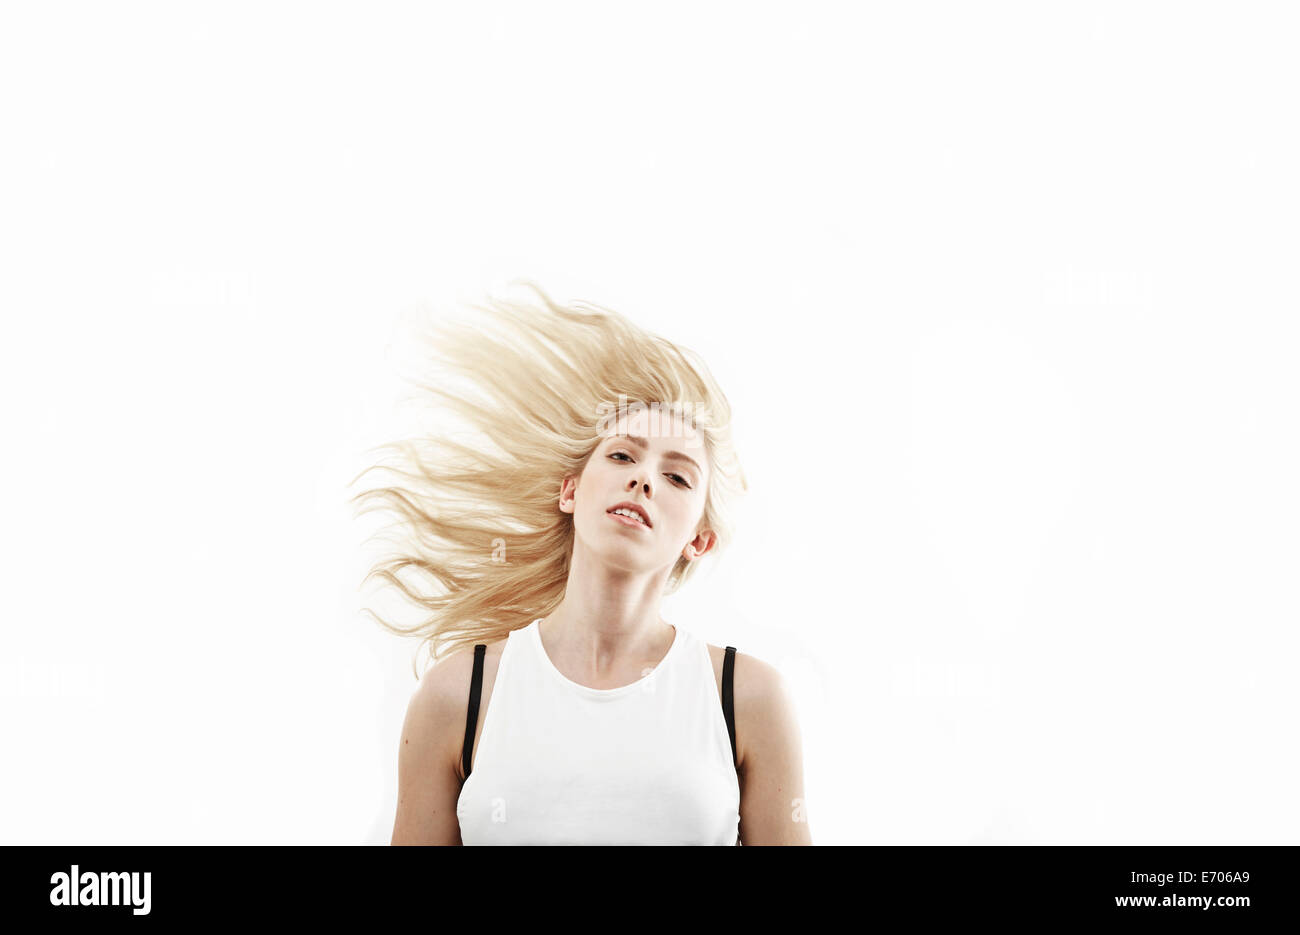 Studio portrait of young woman shaking long blond hair - Stock Image